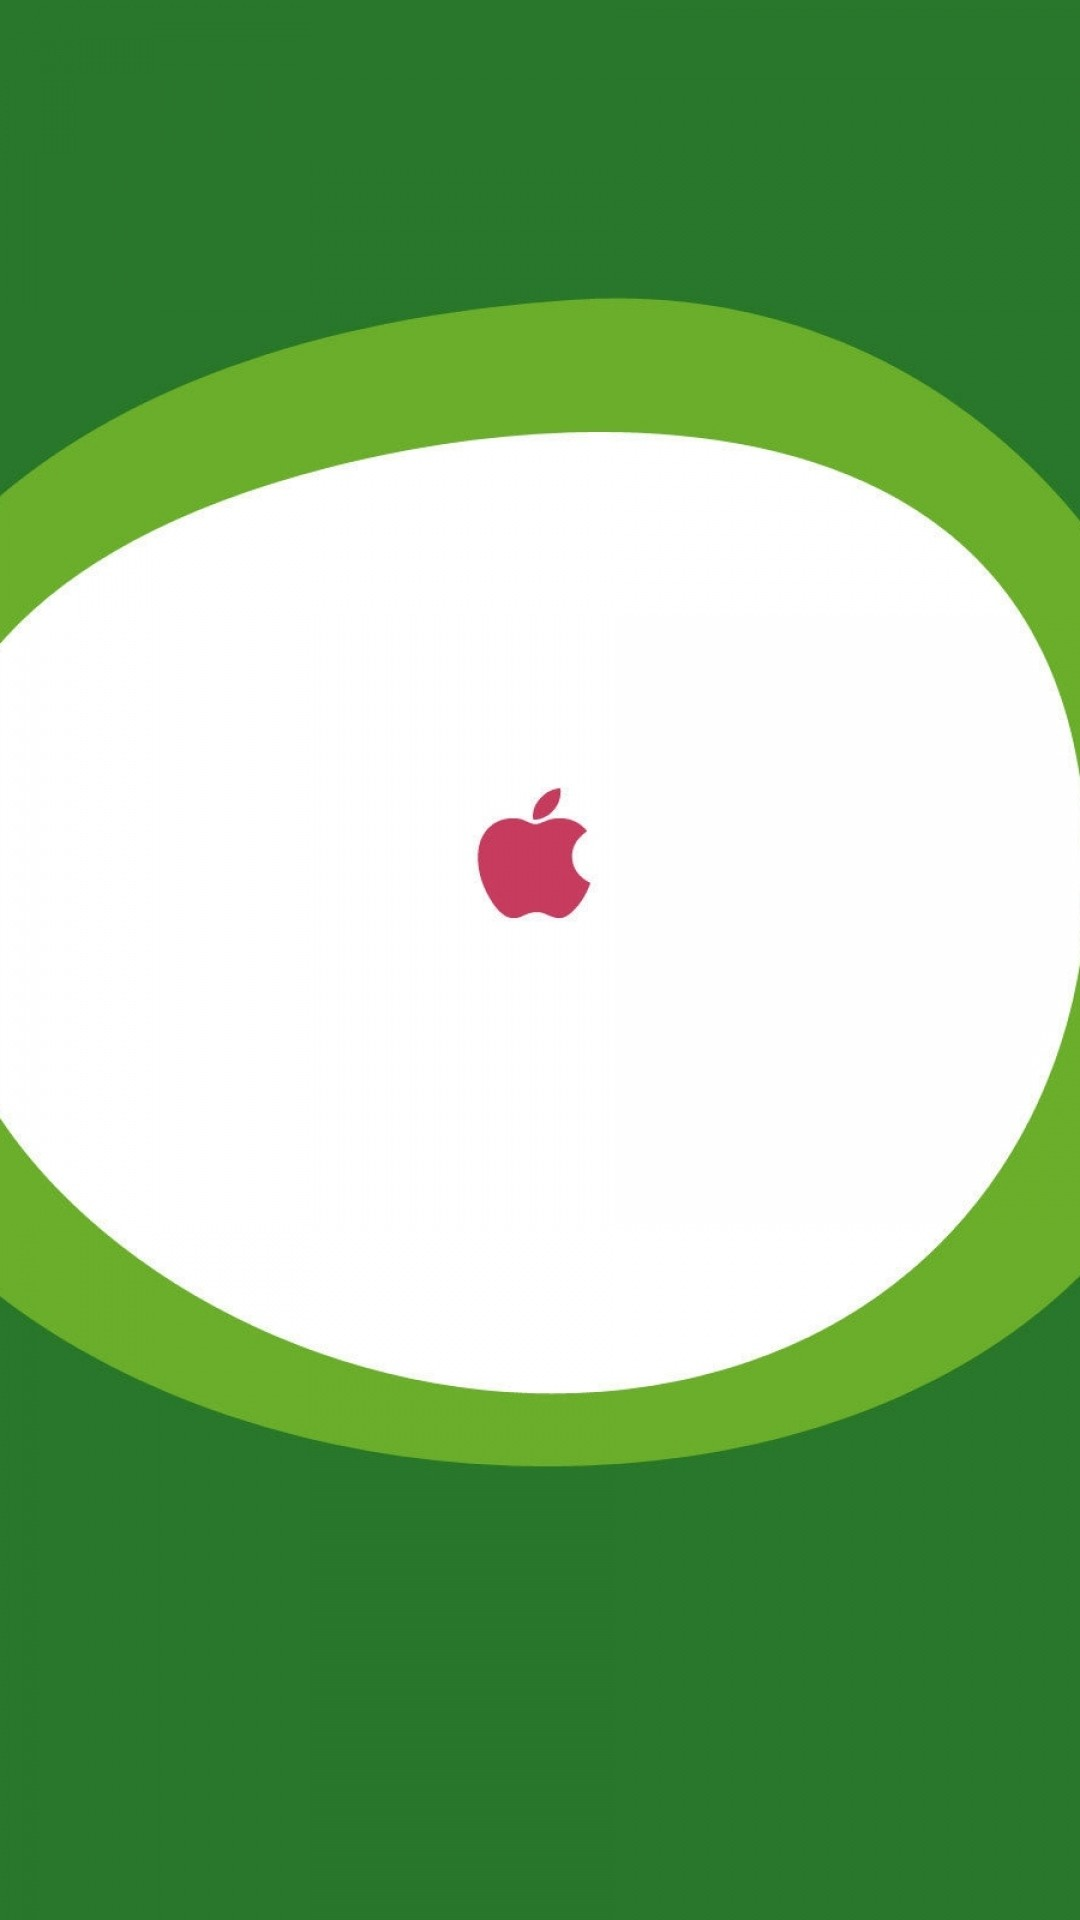 Wallpaper android, green, apple, pink, white